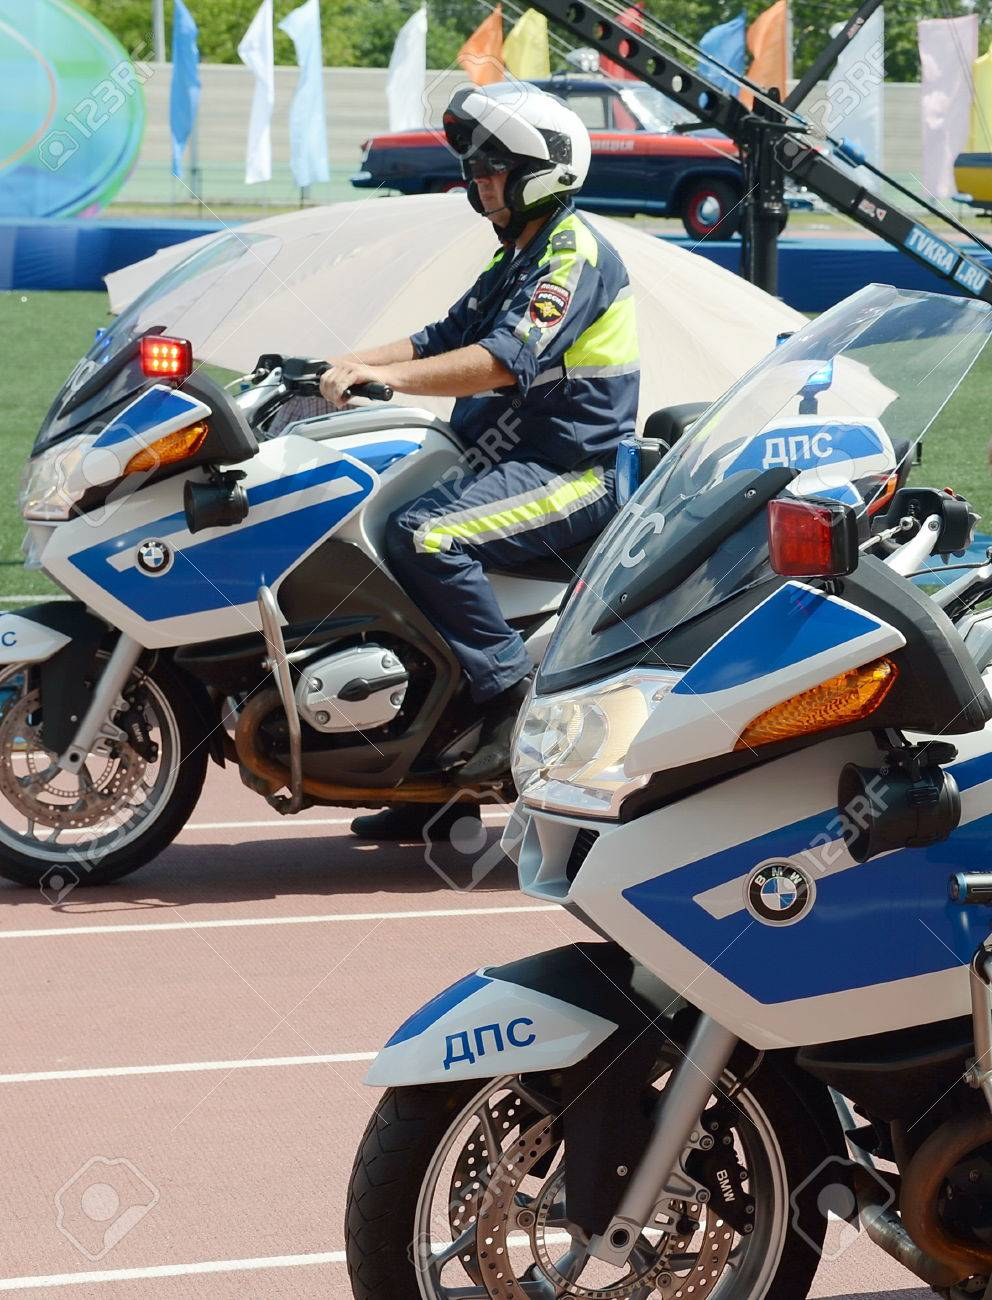 medium resolution of inspectors of traffic police on bmw motorcycles stock photo 75291855